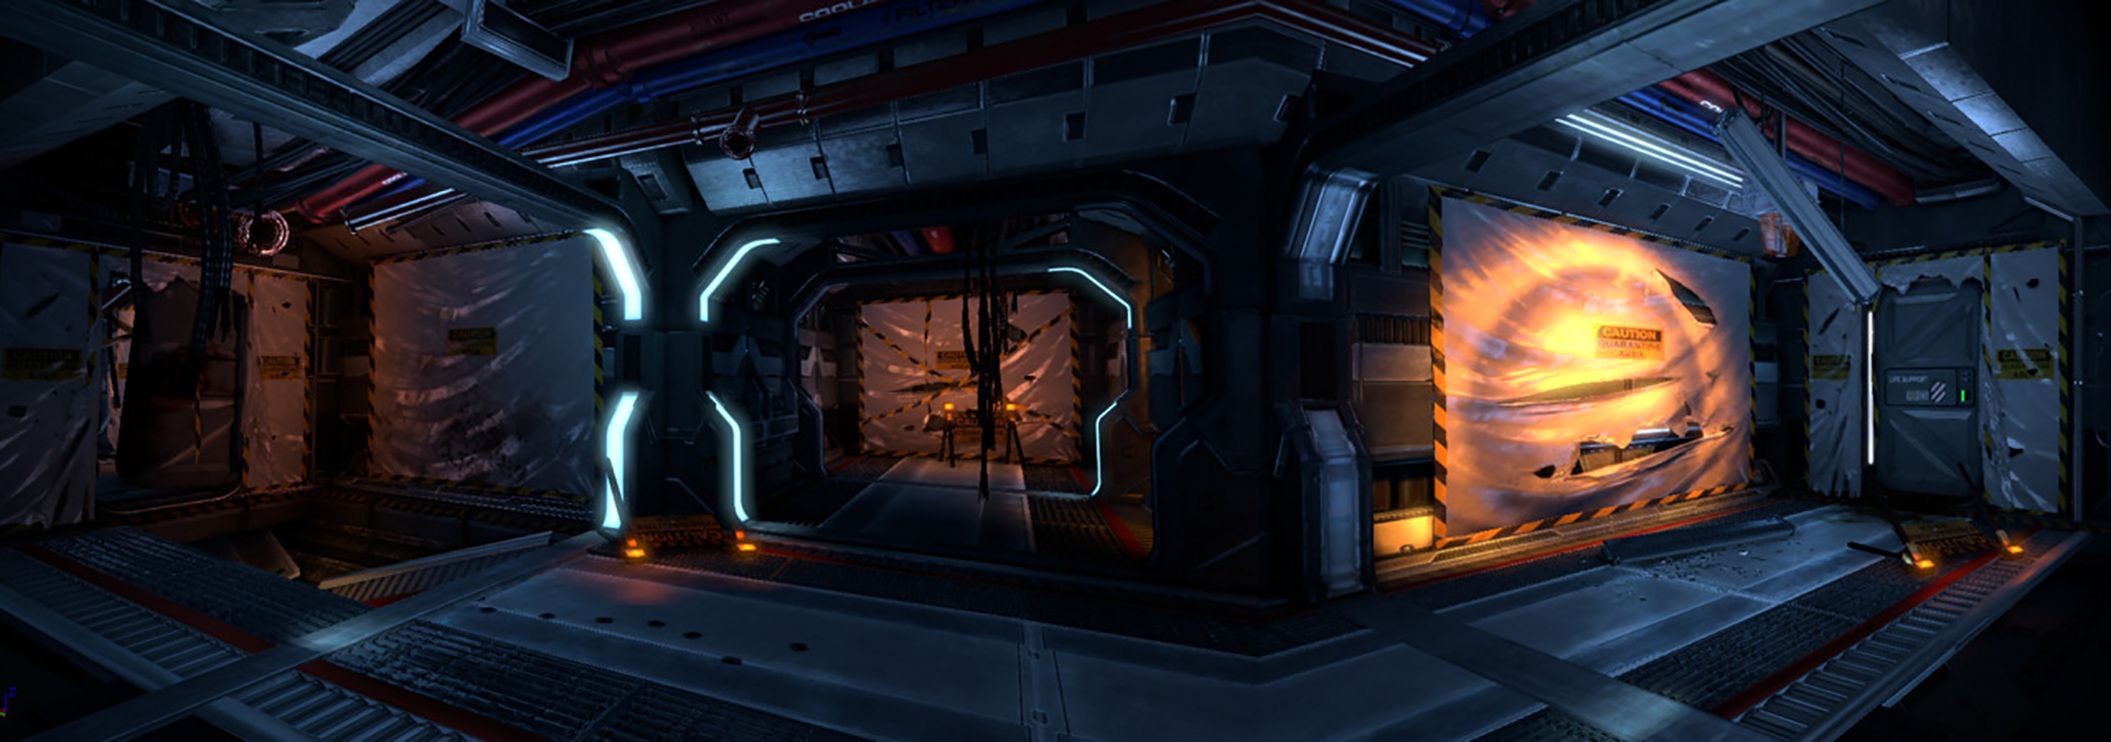 This junction was one of the first areas we introduced these meshes in to prove out the new Sulaco interiors